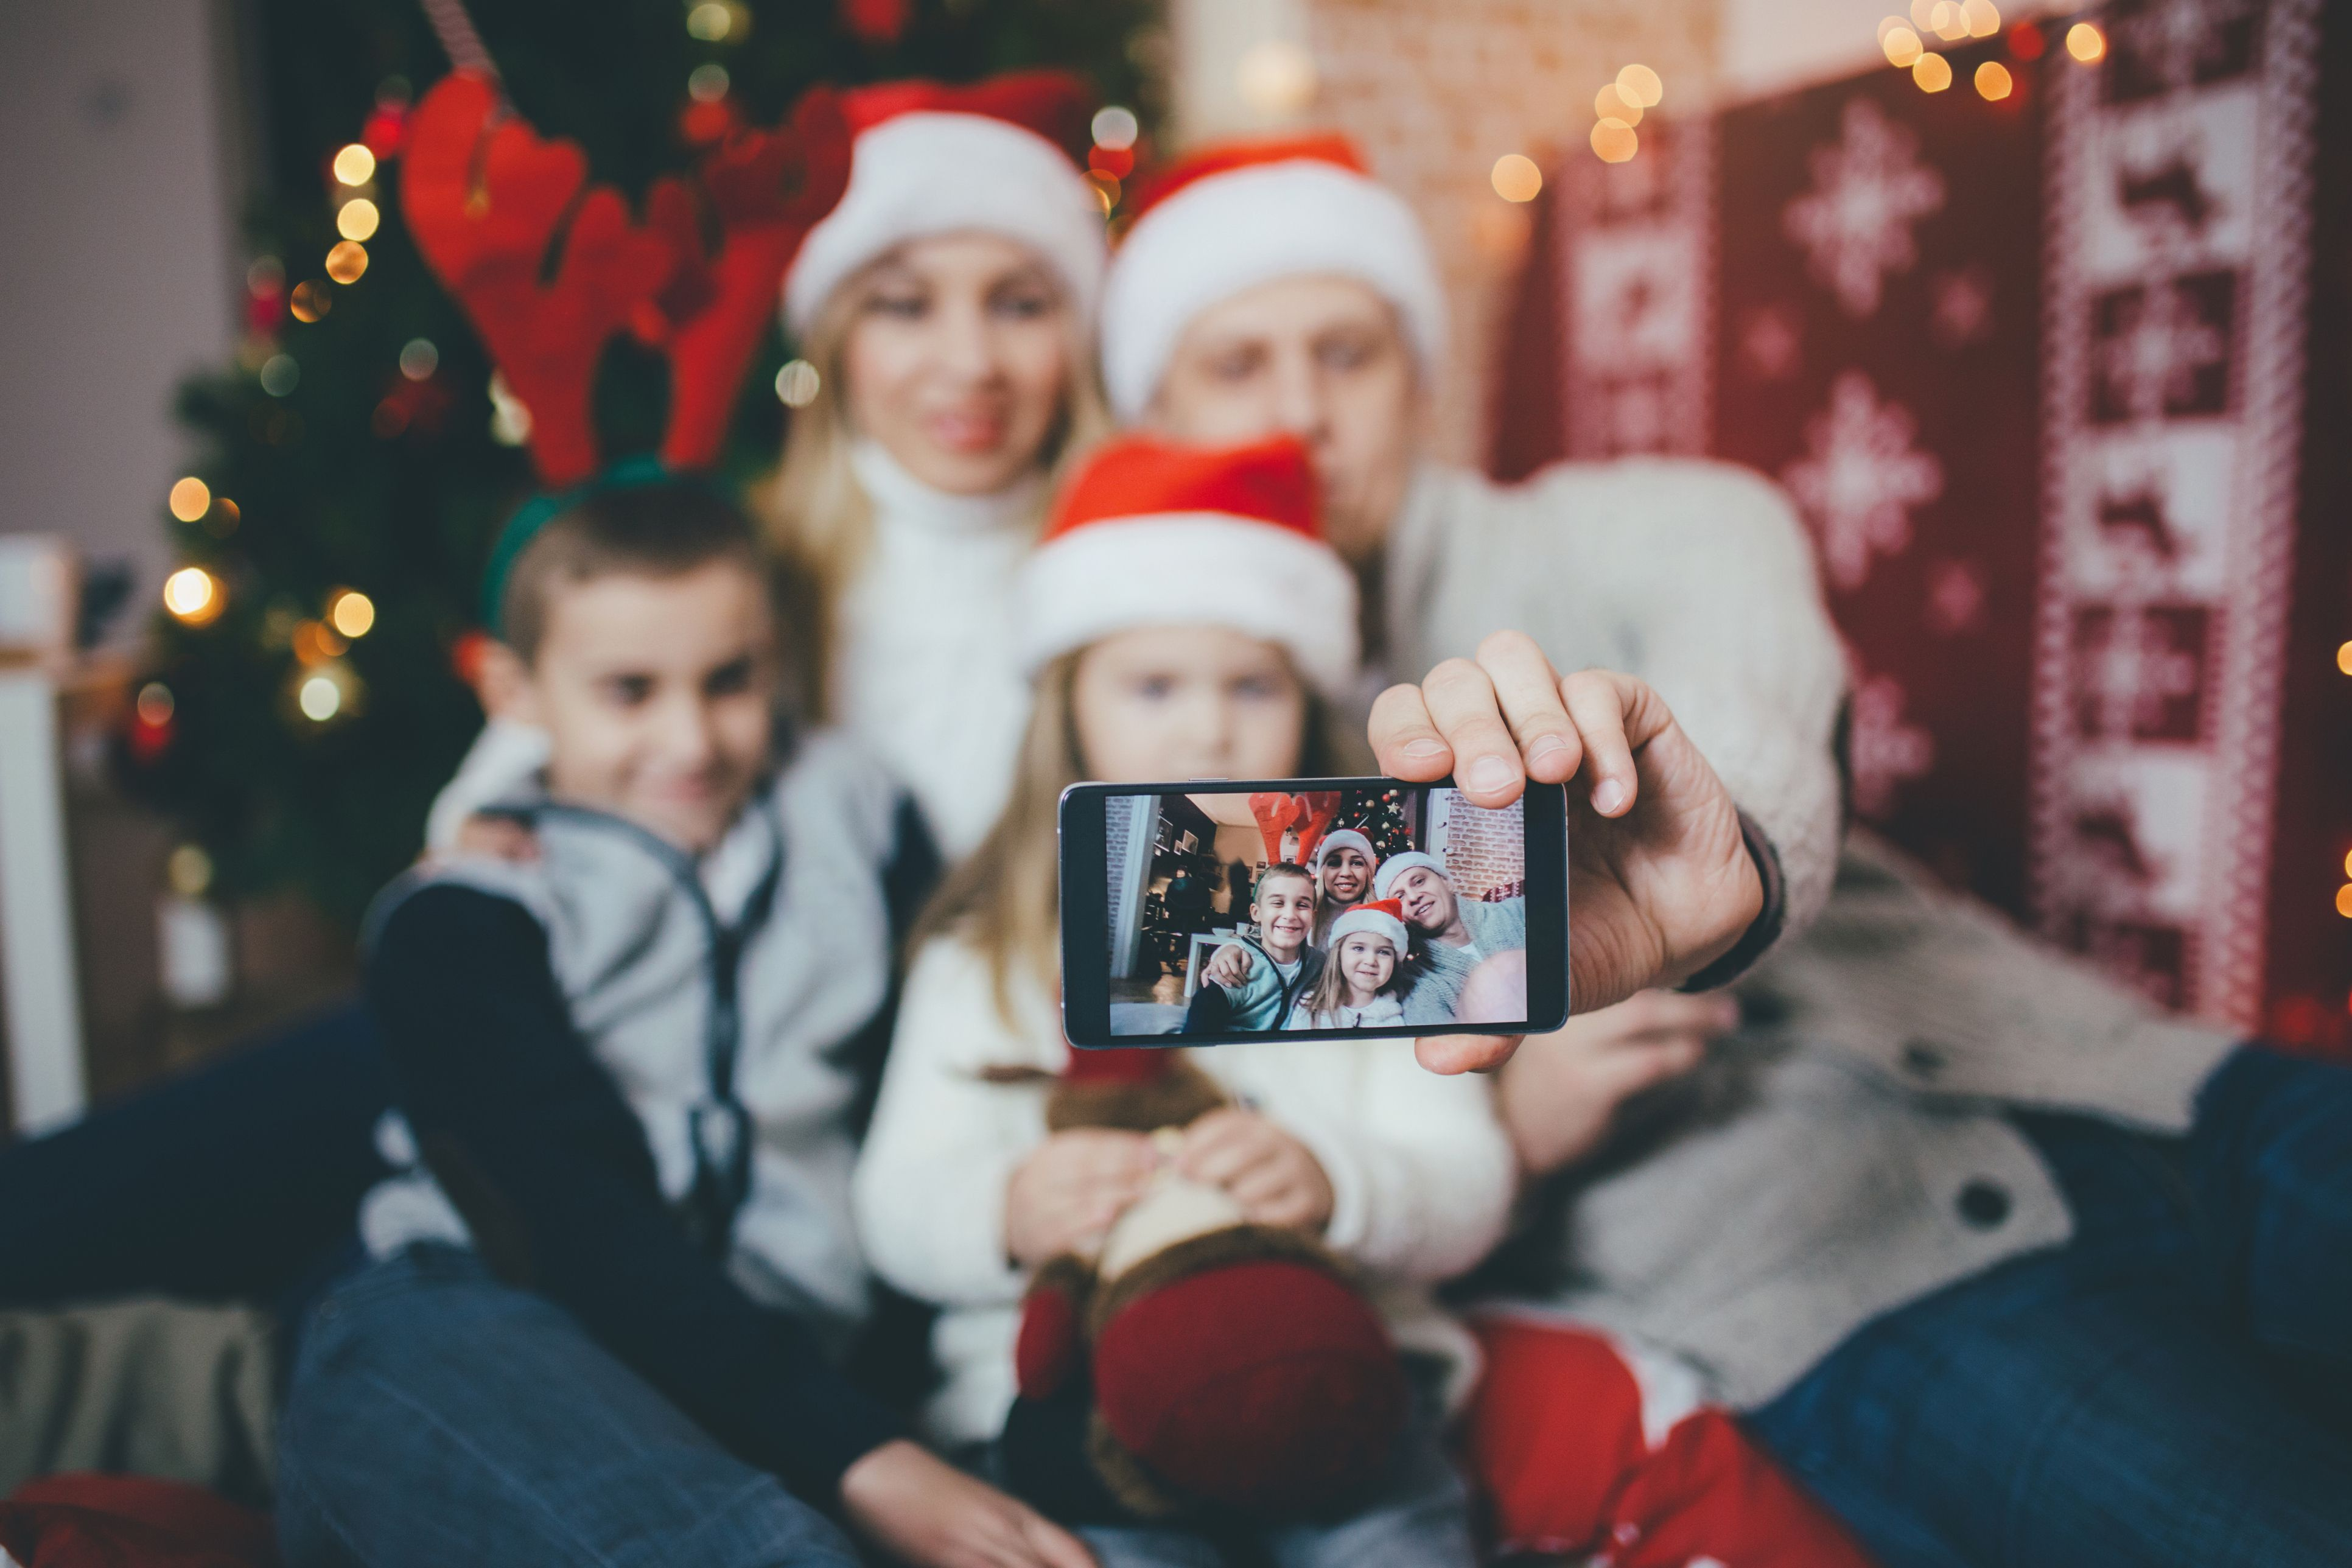 70+ Christmas Captions for Instagram - Cute and Clever Captions for Holiday  Photos c86f4a8e0